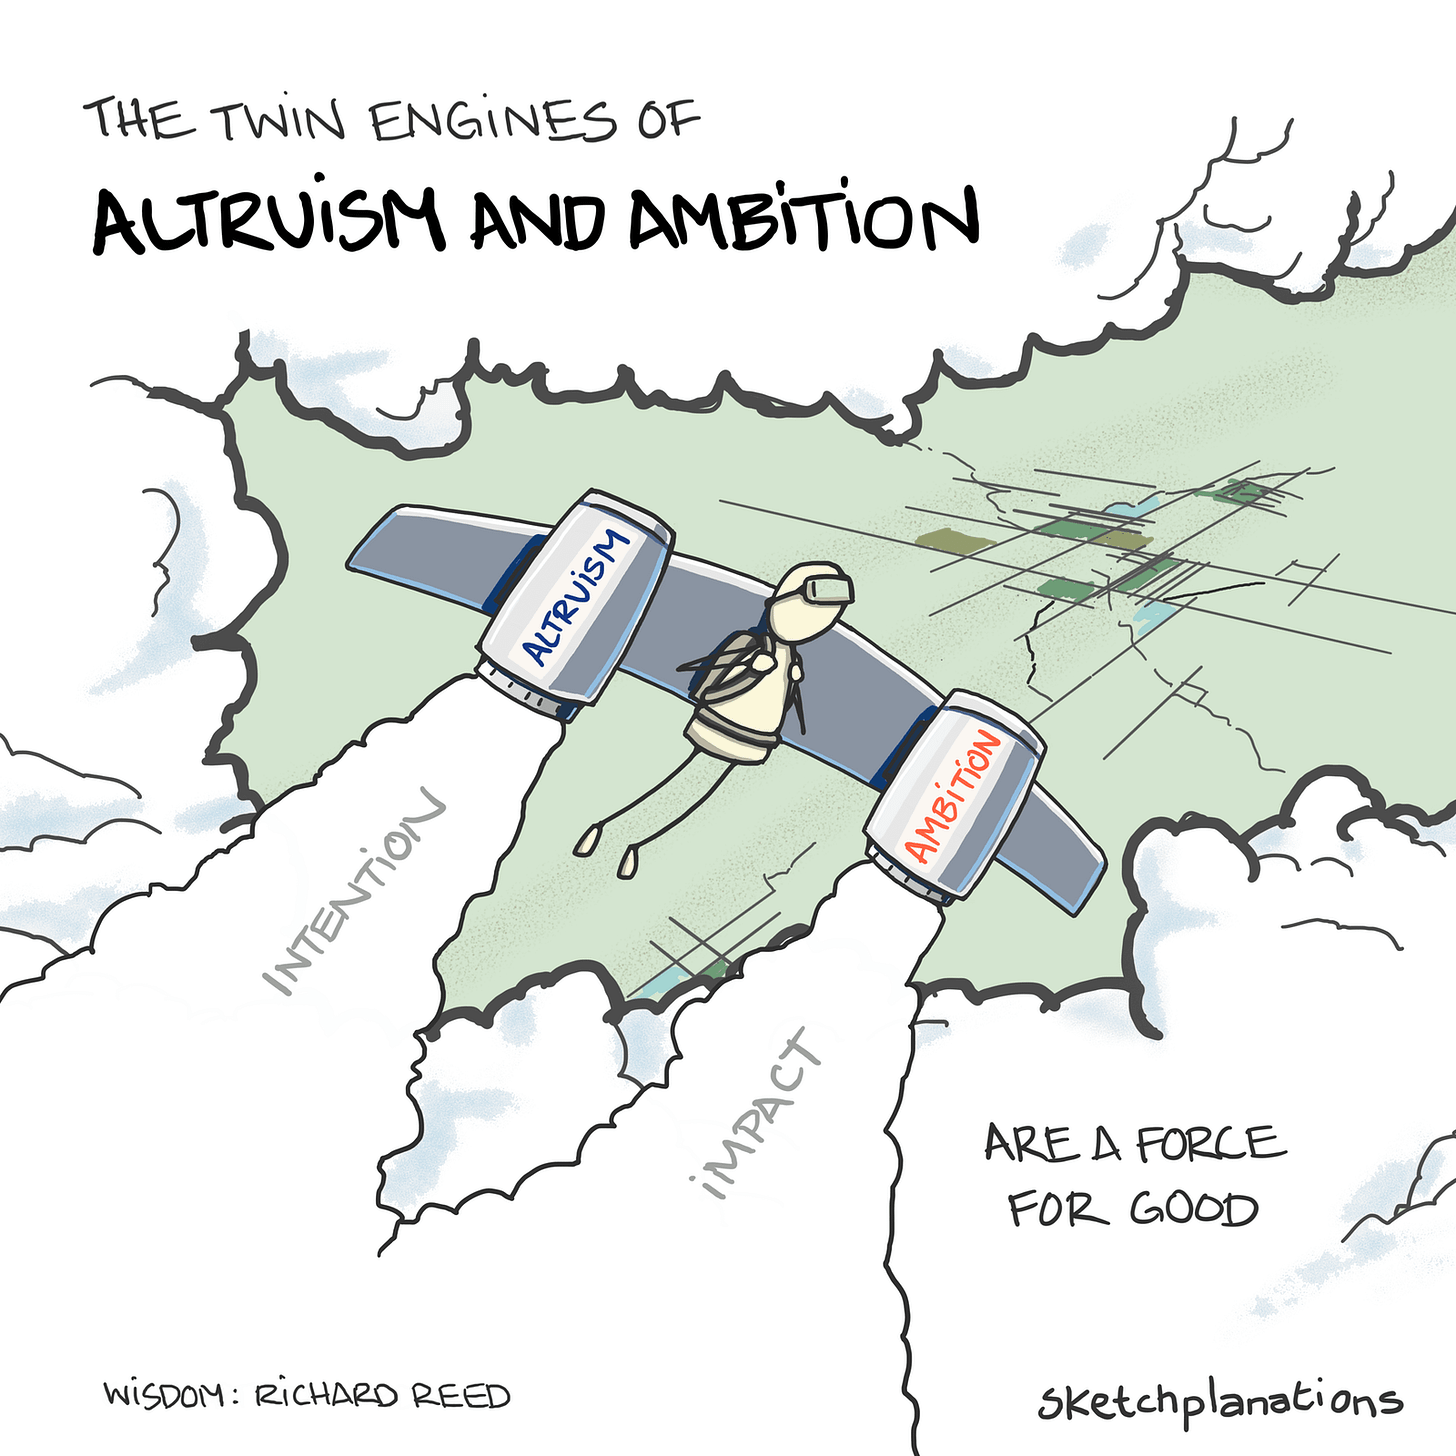 Altruism and ambition - Sketchplanations